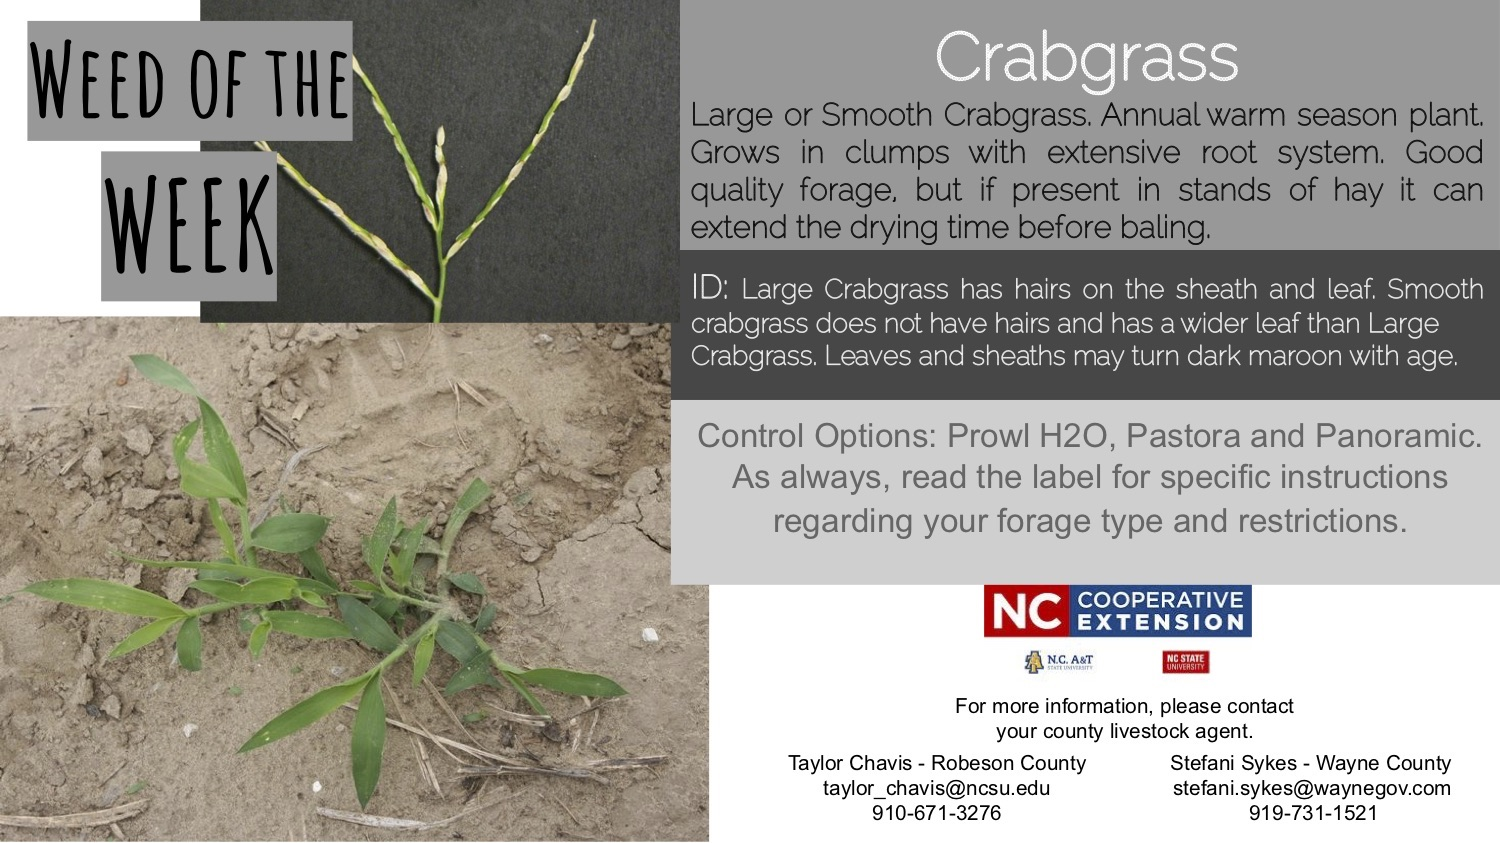 Information on the weed crabgrass